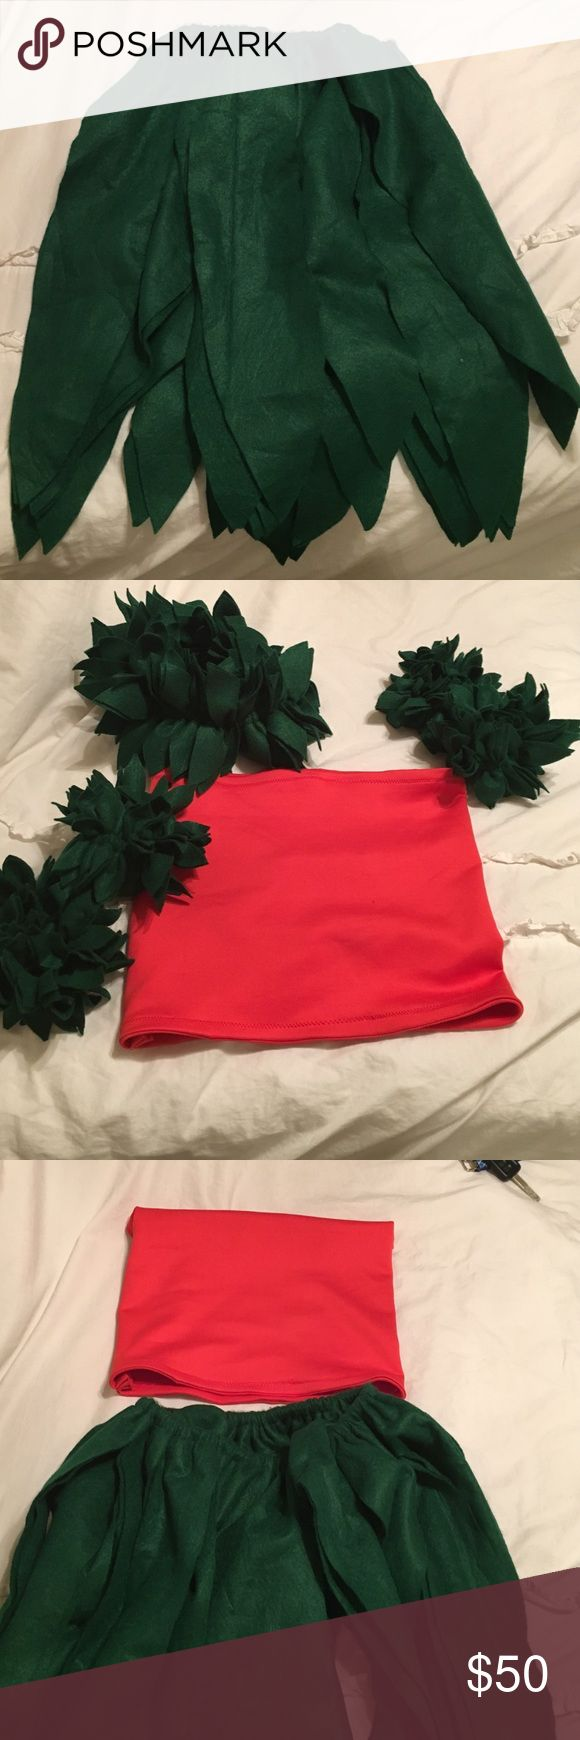 Hula costume !!!! Lilo! Red tube top! Grass skirt, grass headband and grass ankle and wrist bands !!! Other